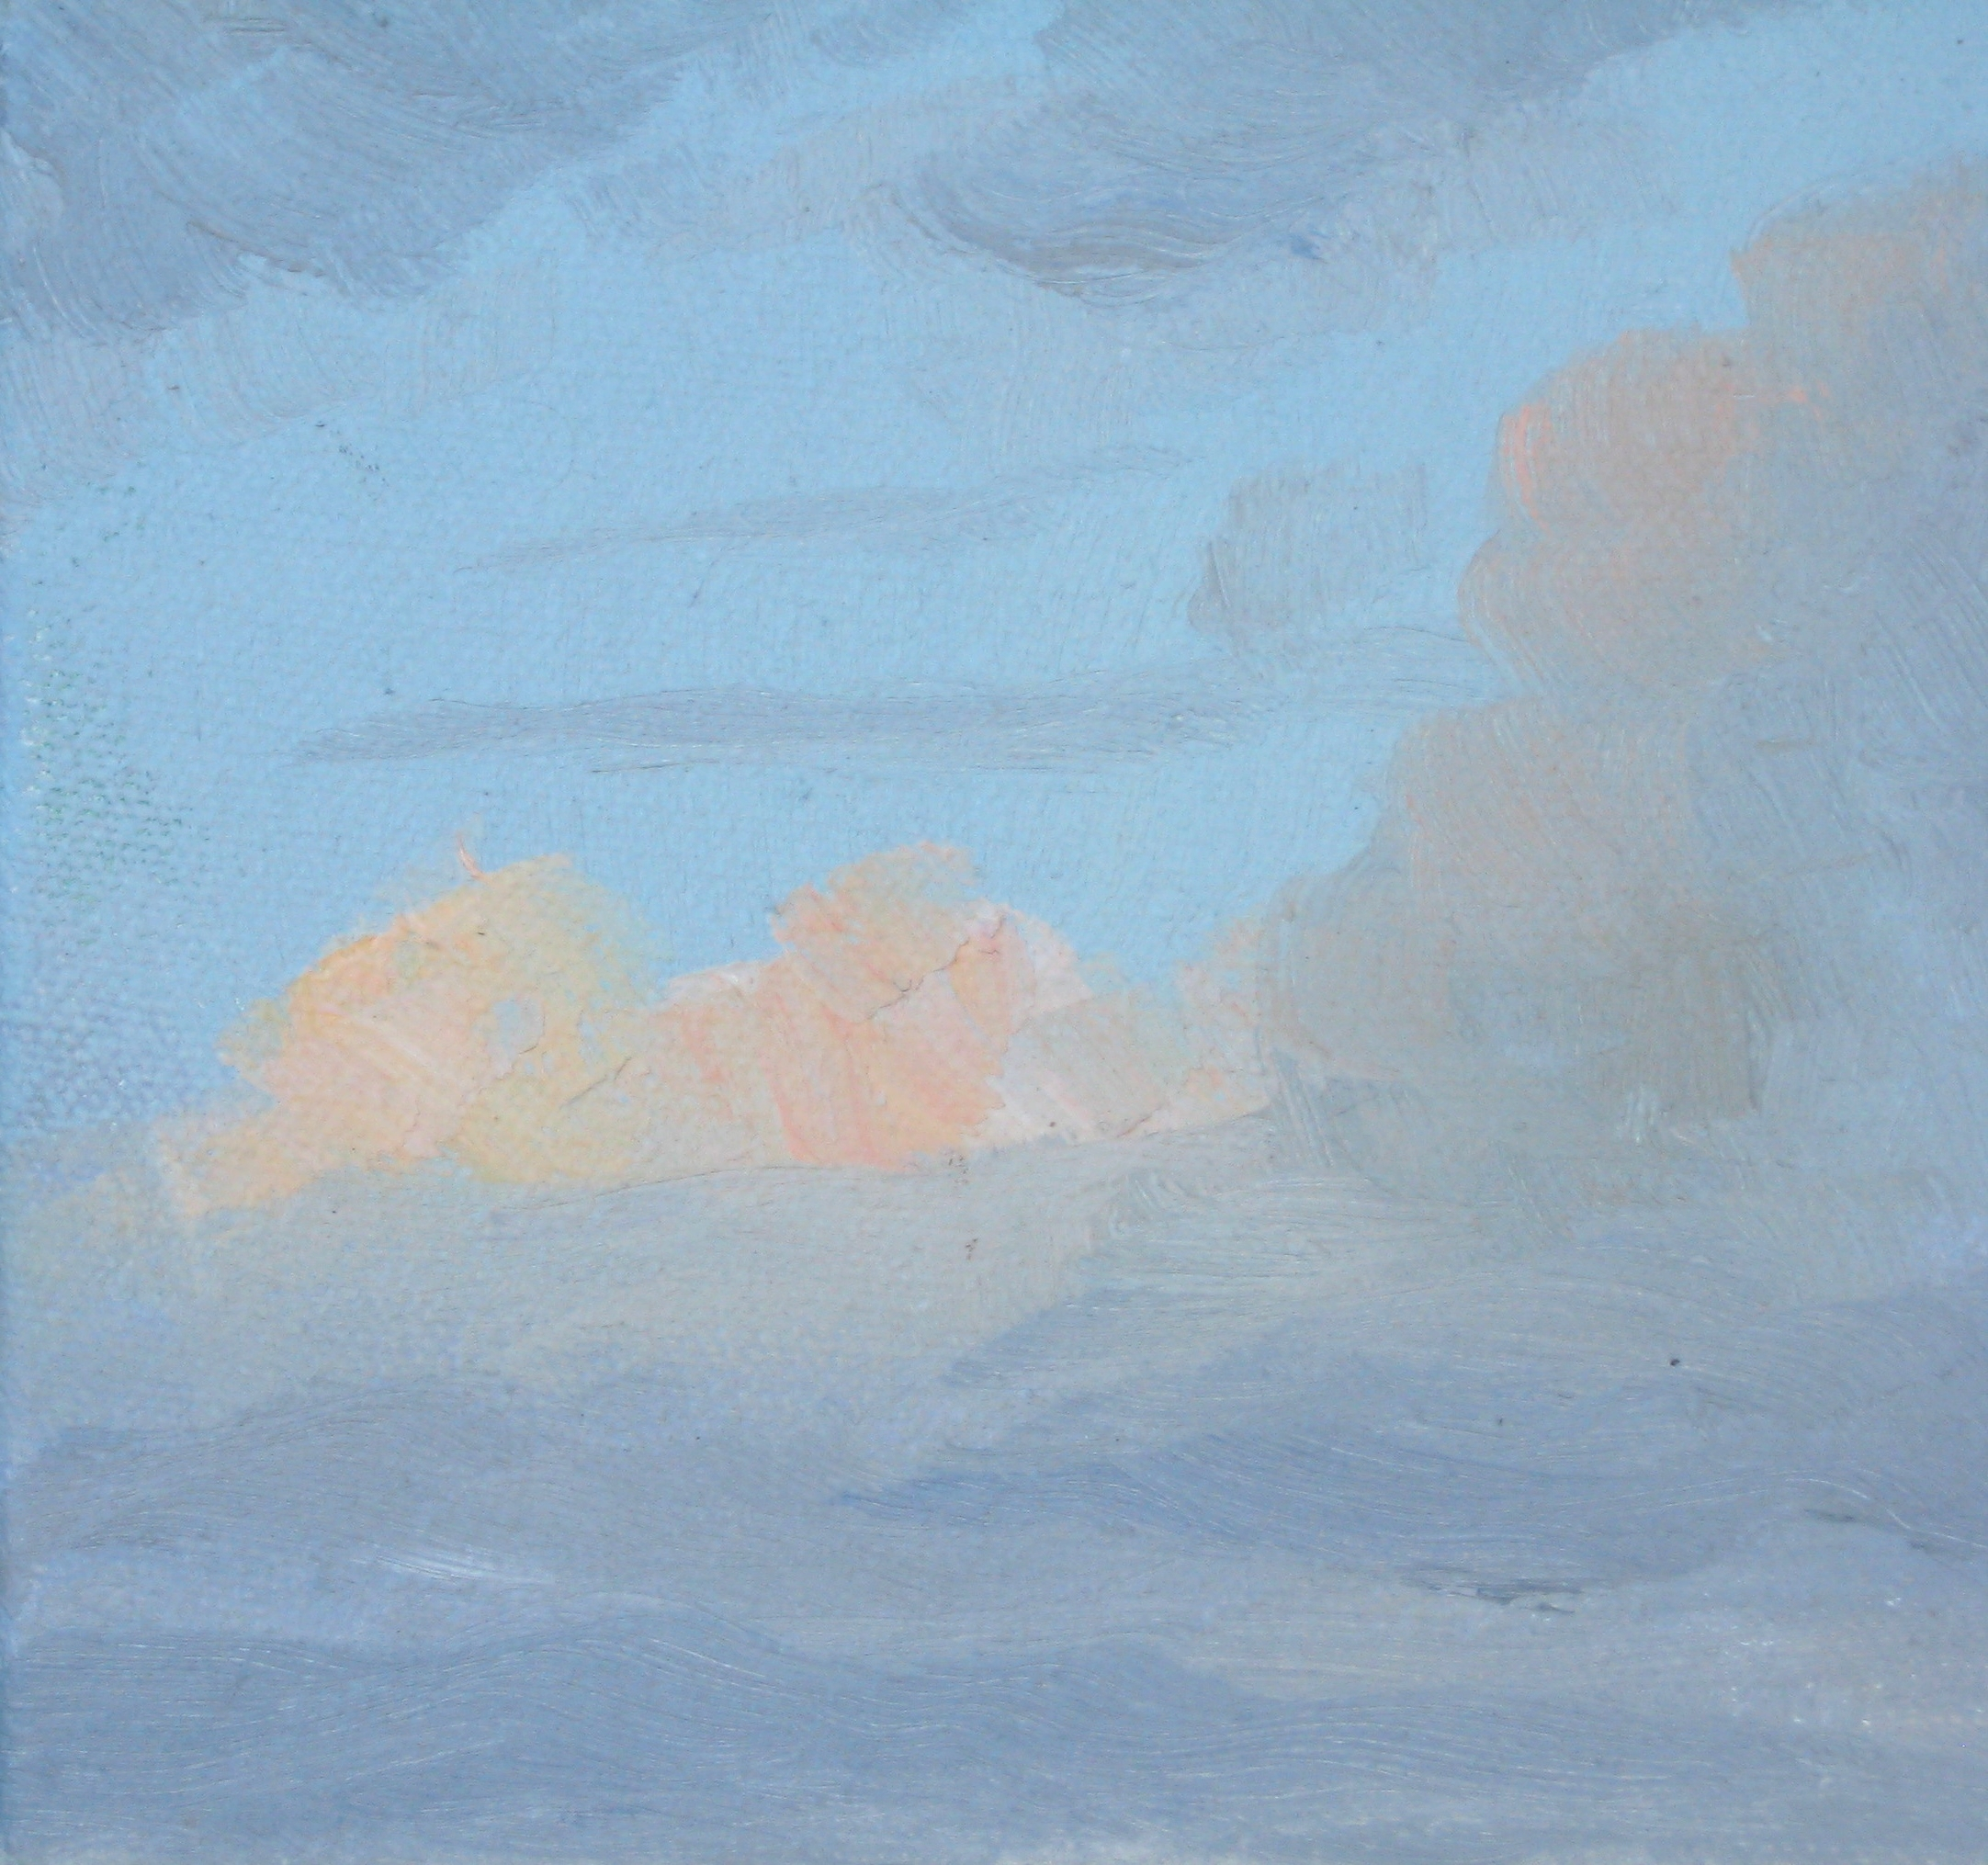 "SKY I  5X5X1"" (13X13X2.5cm)   Oil on canvas"